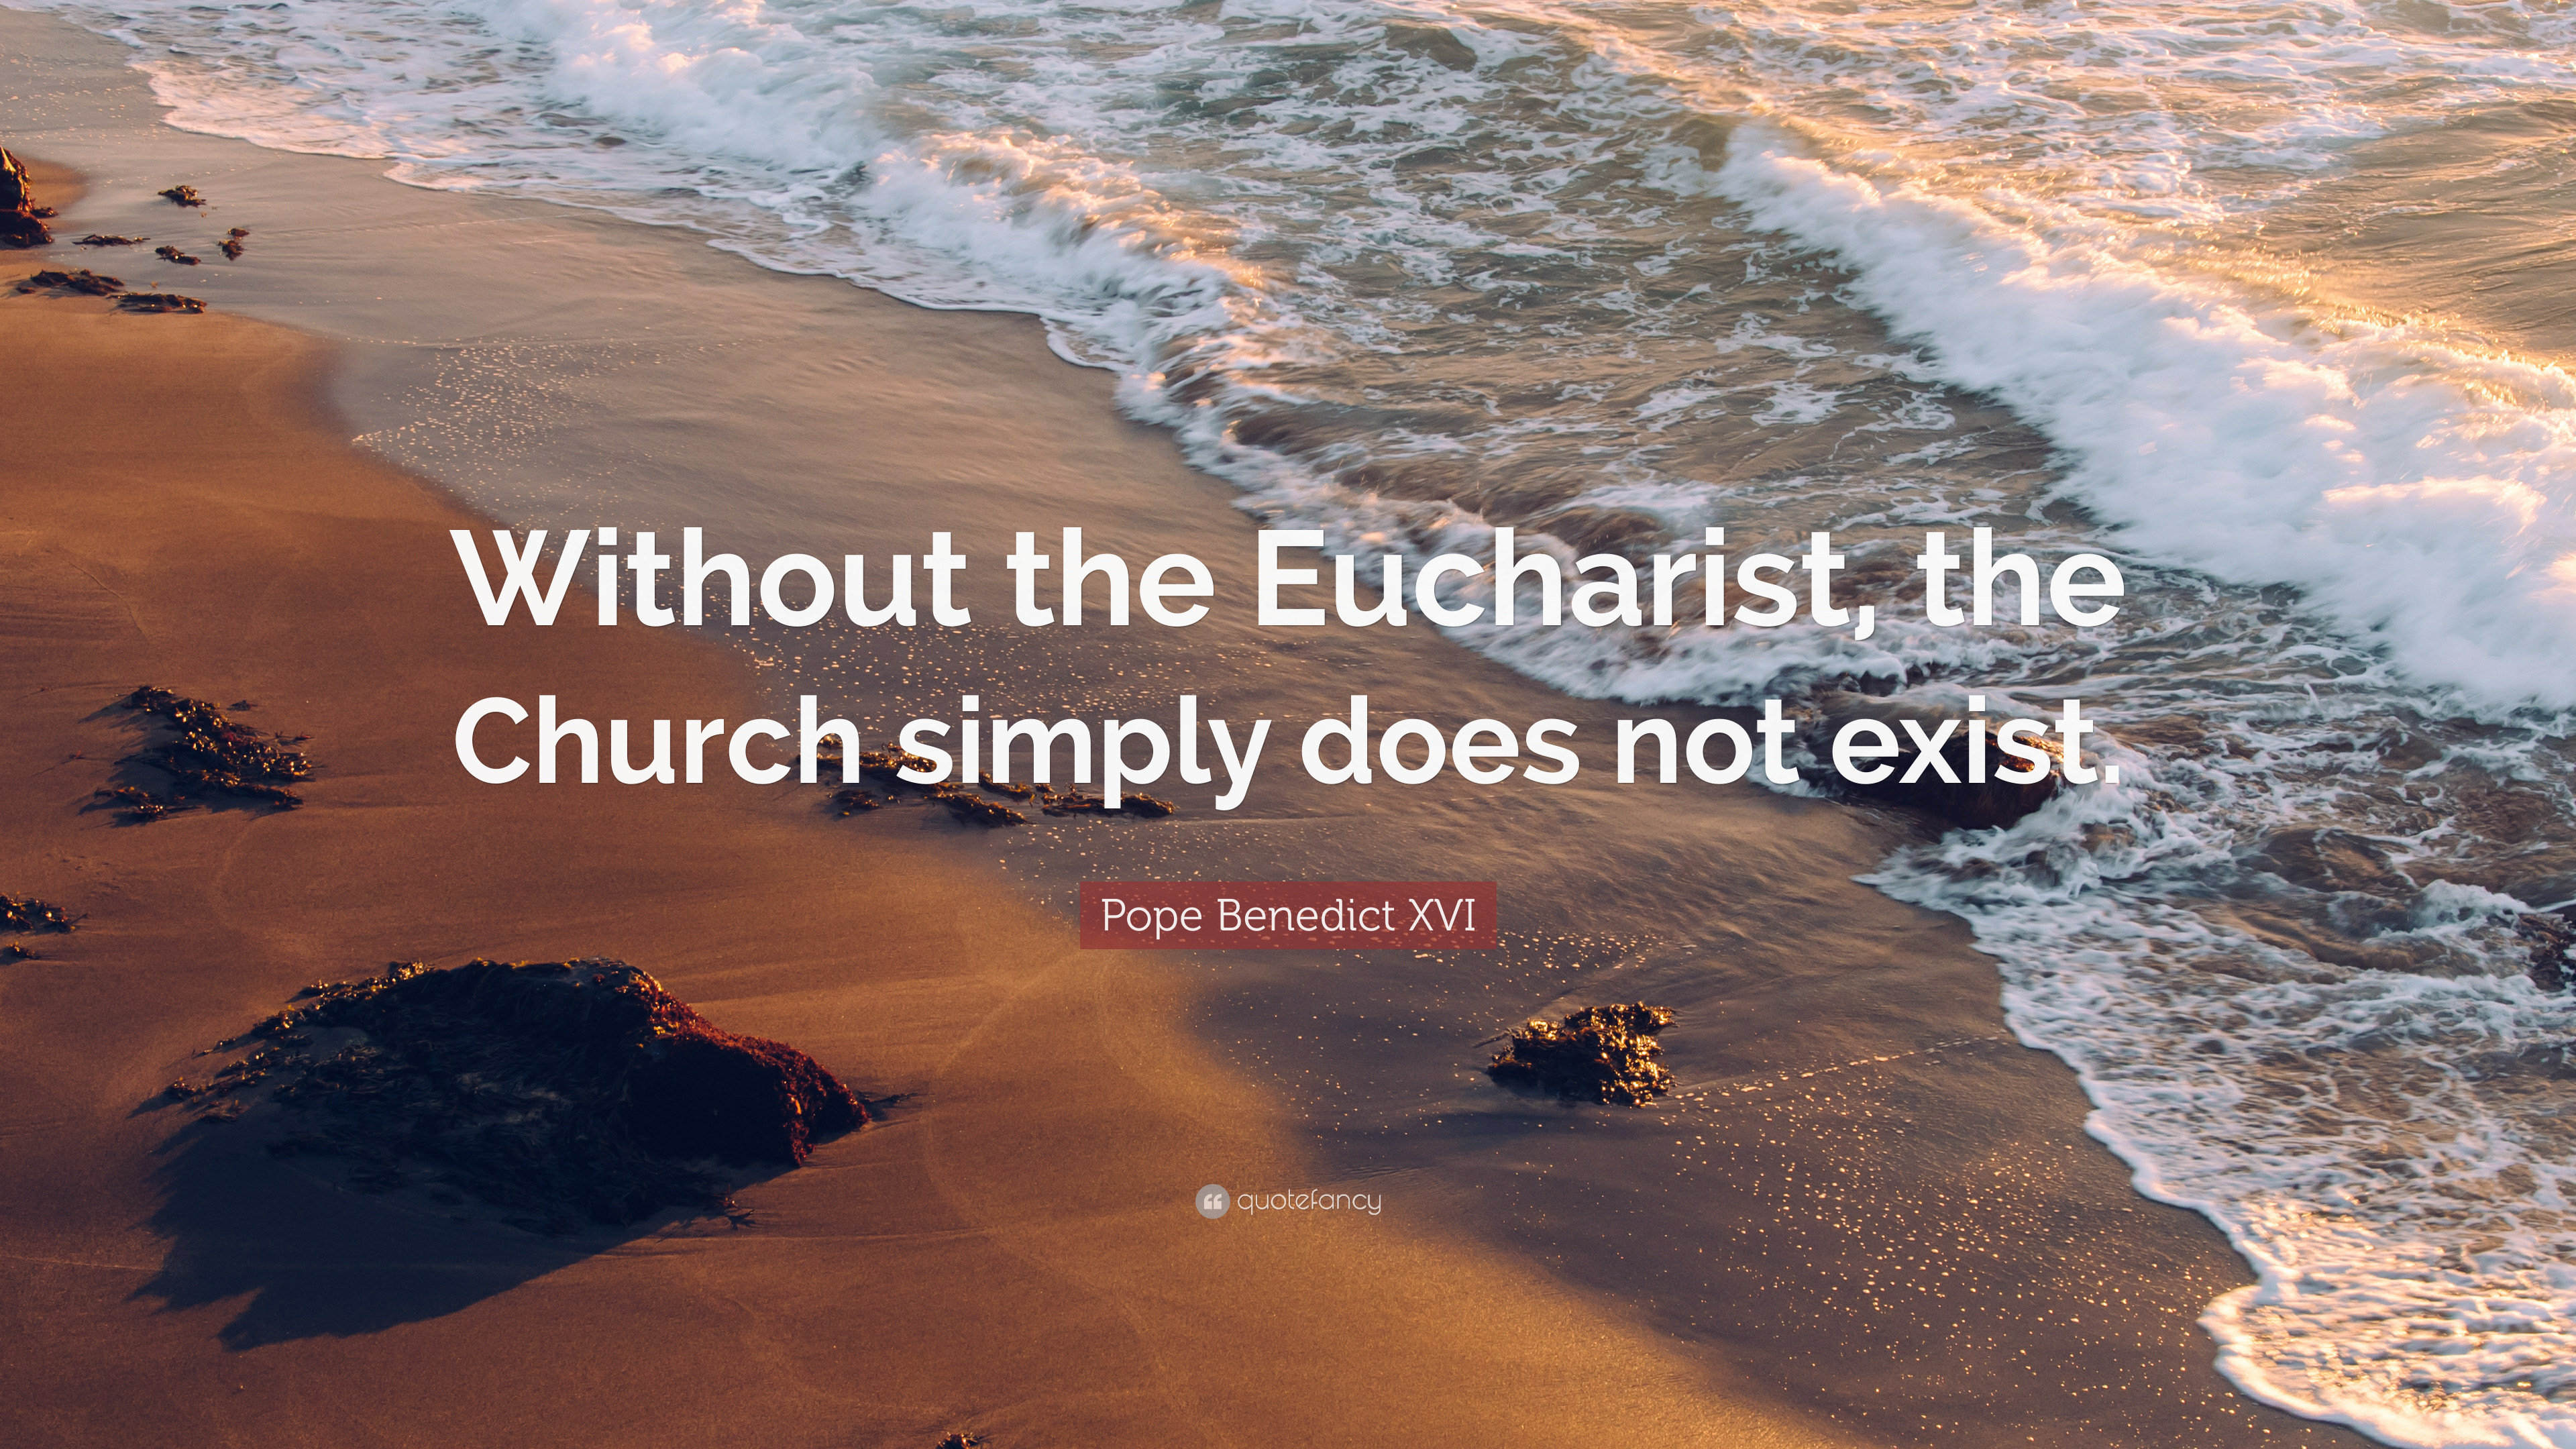 """Res: 3840x2160, Pope Benedict XVI Quote: """"Without the Eucharist, the Church simply does not  exist"""